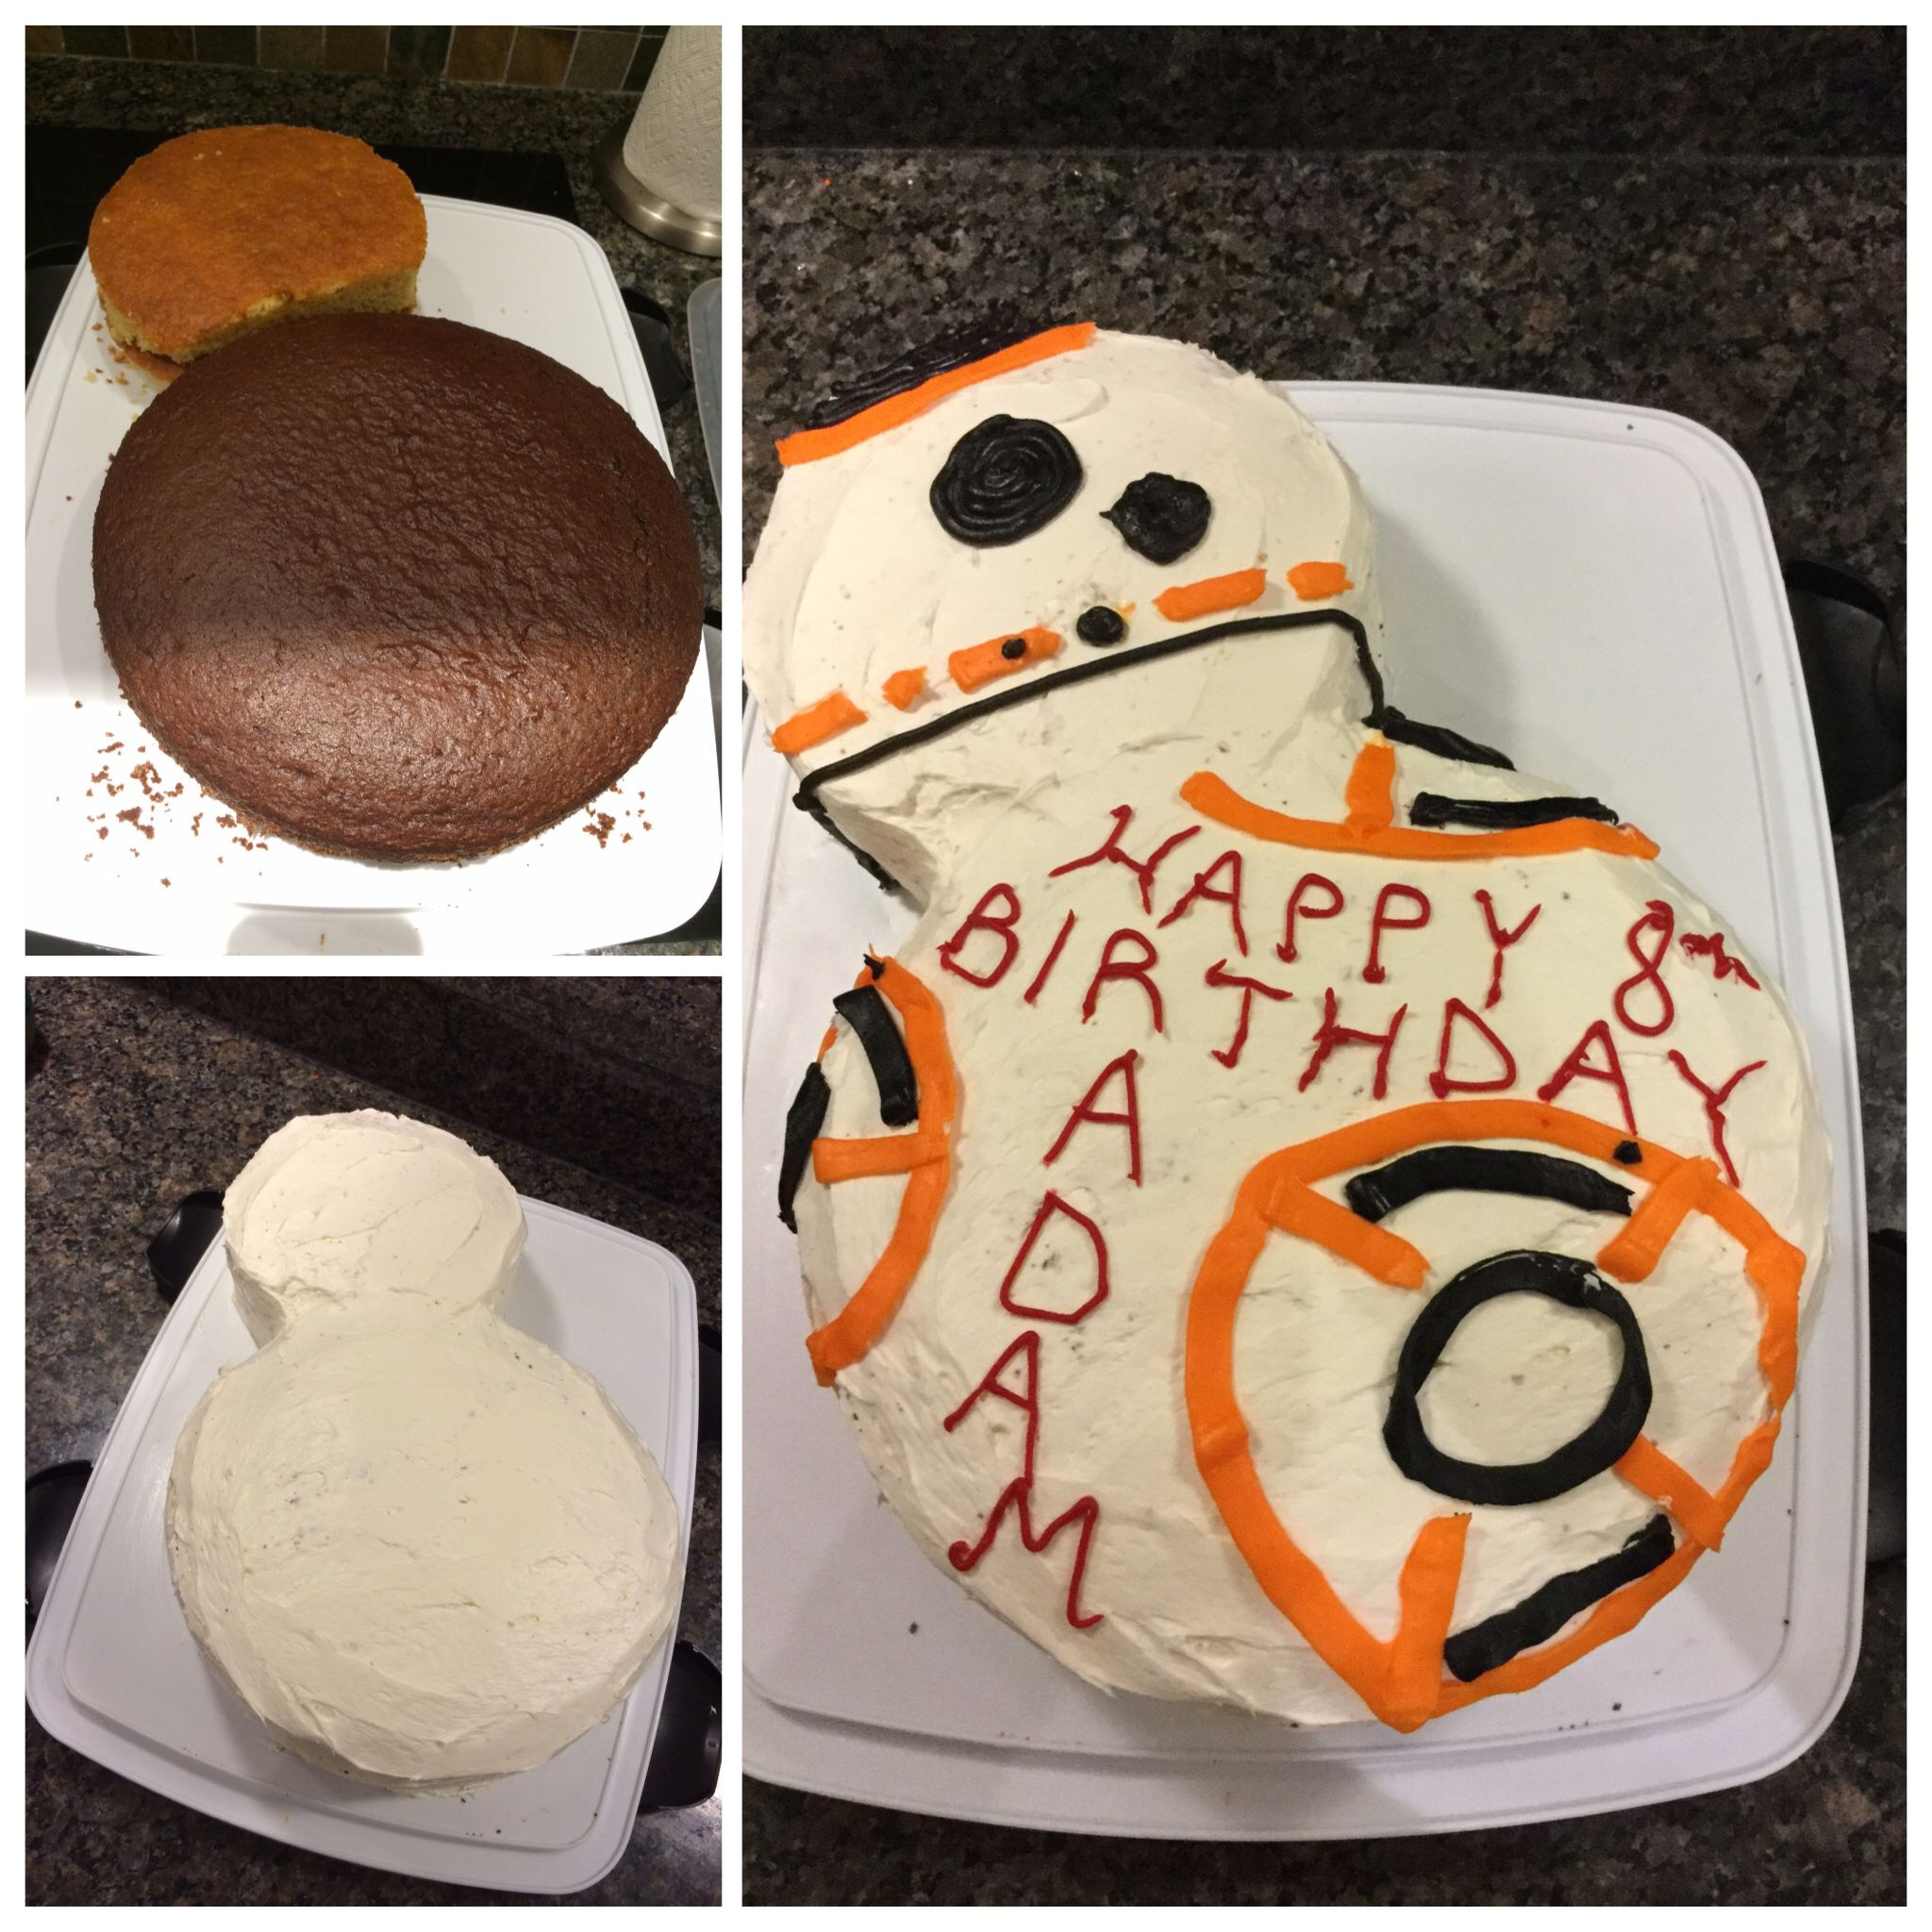 Easy Birthday Cake To Make Your BB-8 Fan Happy.